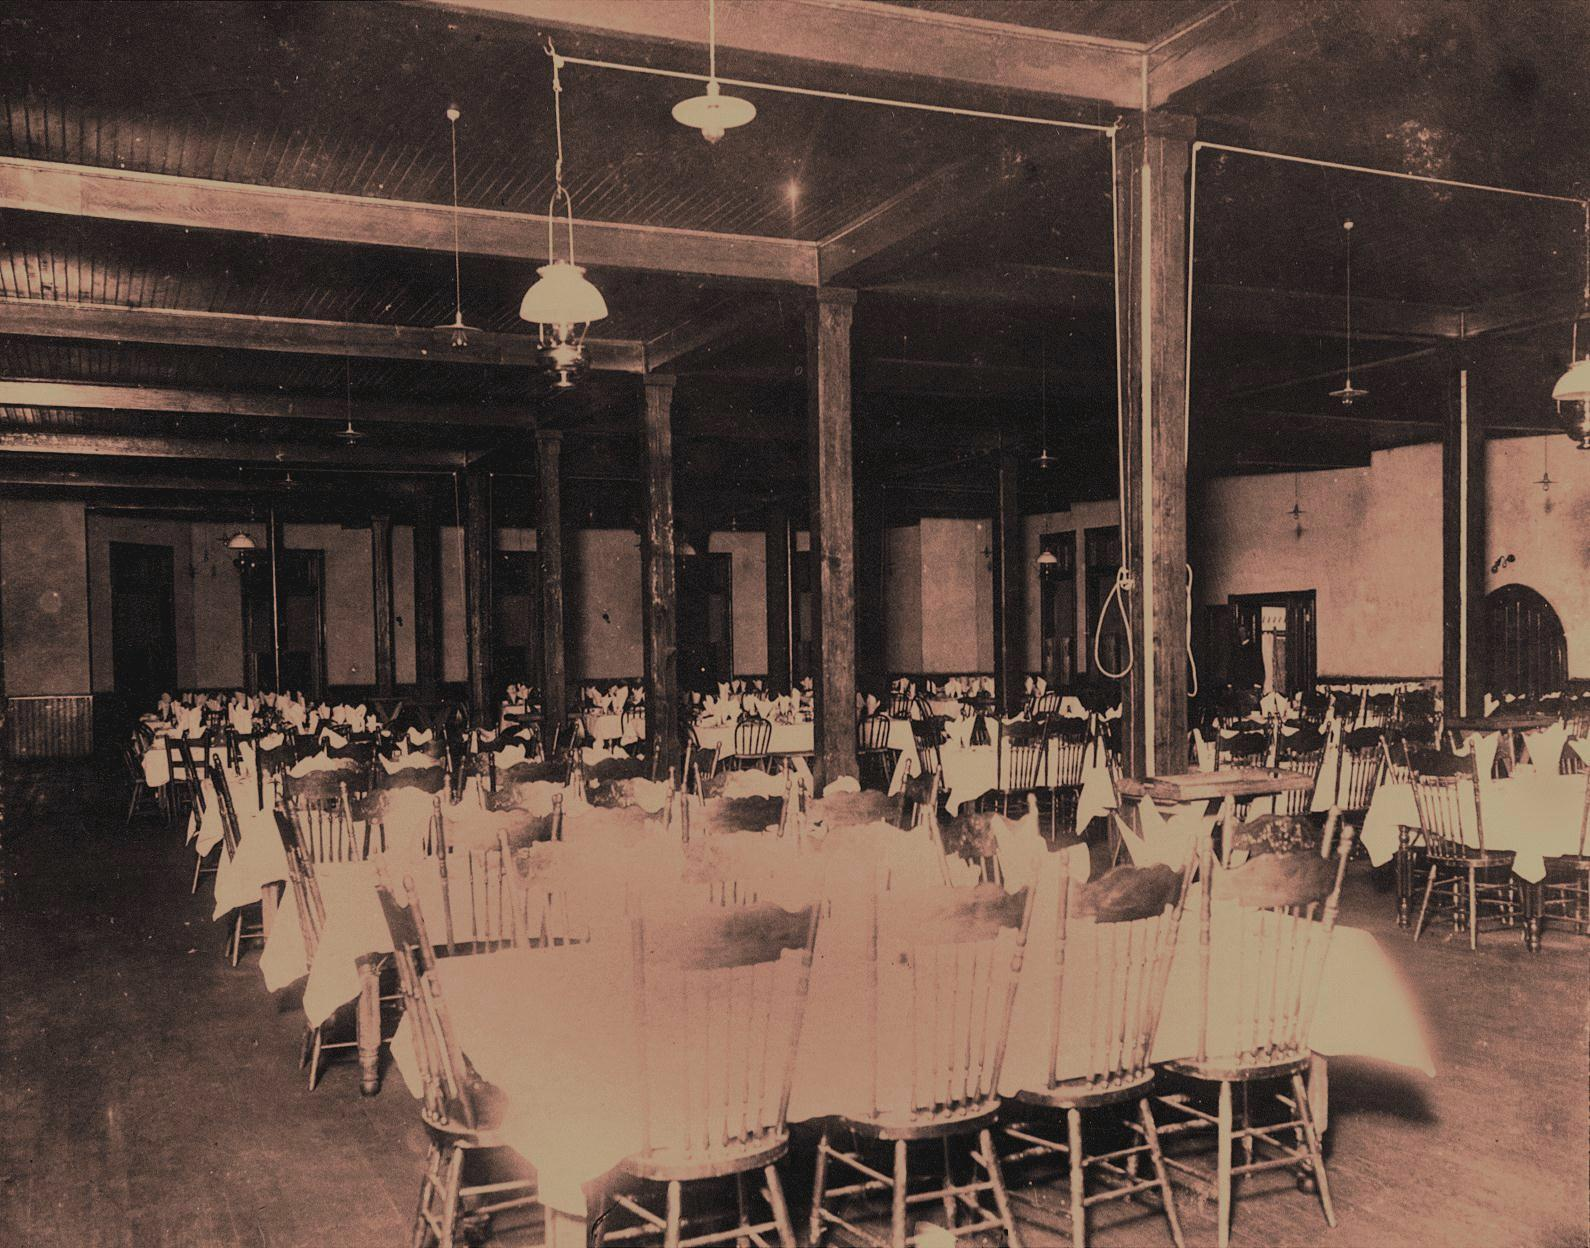 Mess hall interior, ca. 1900.